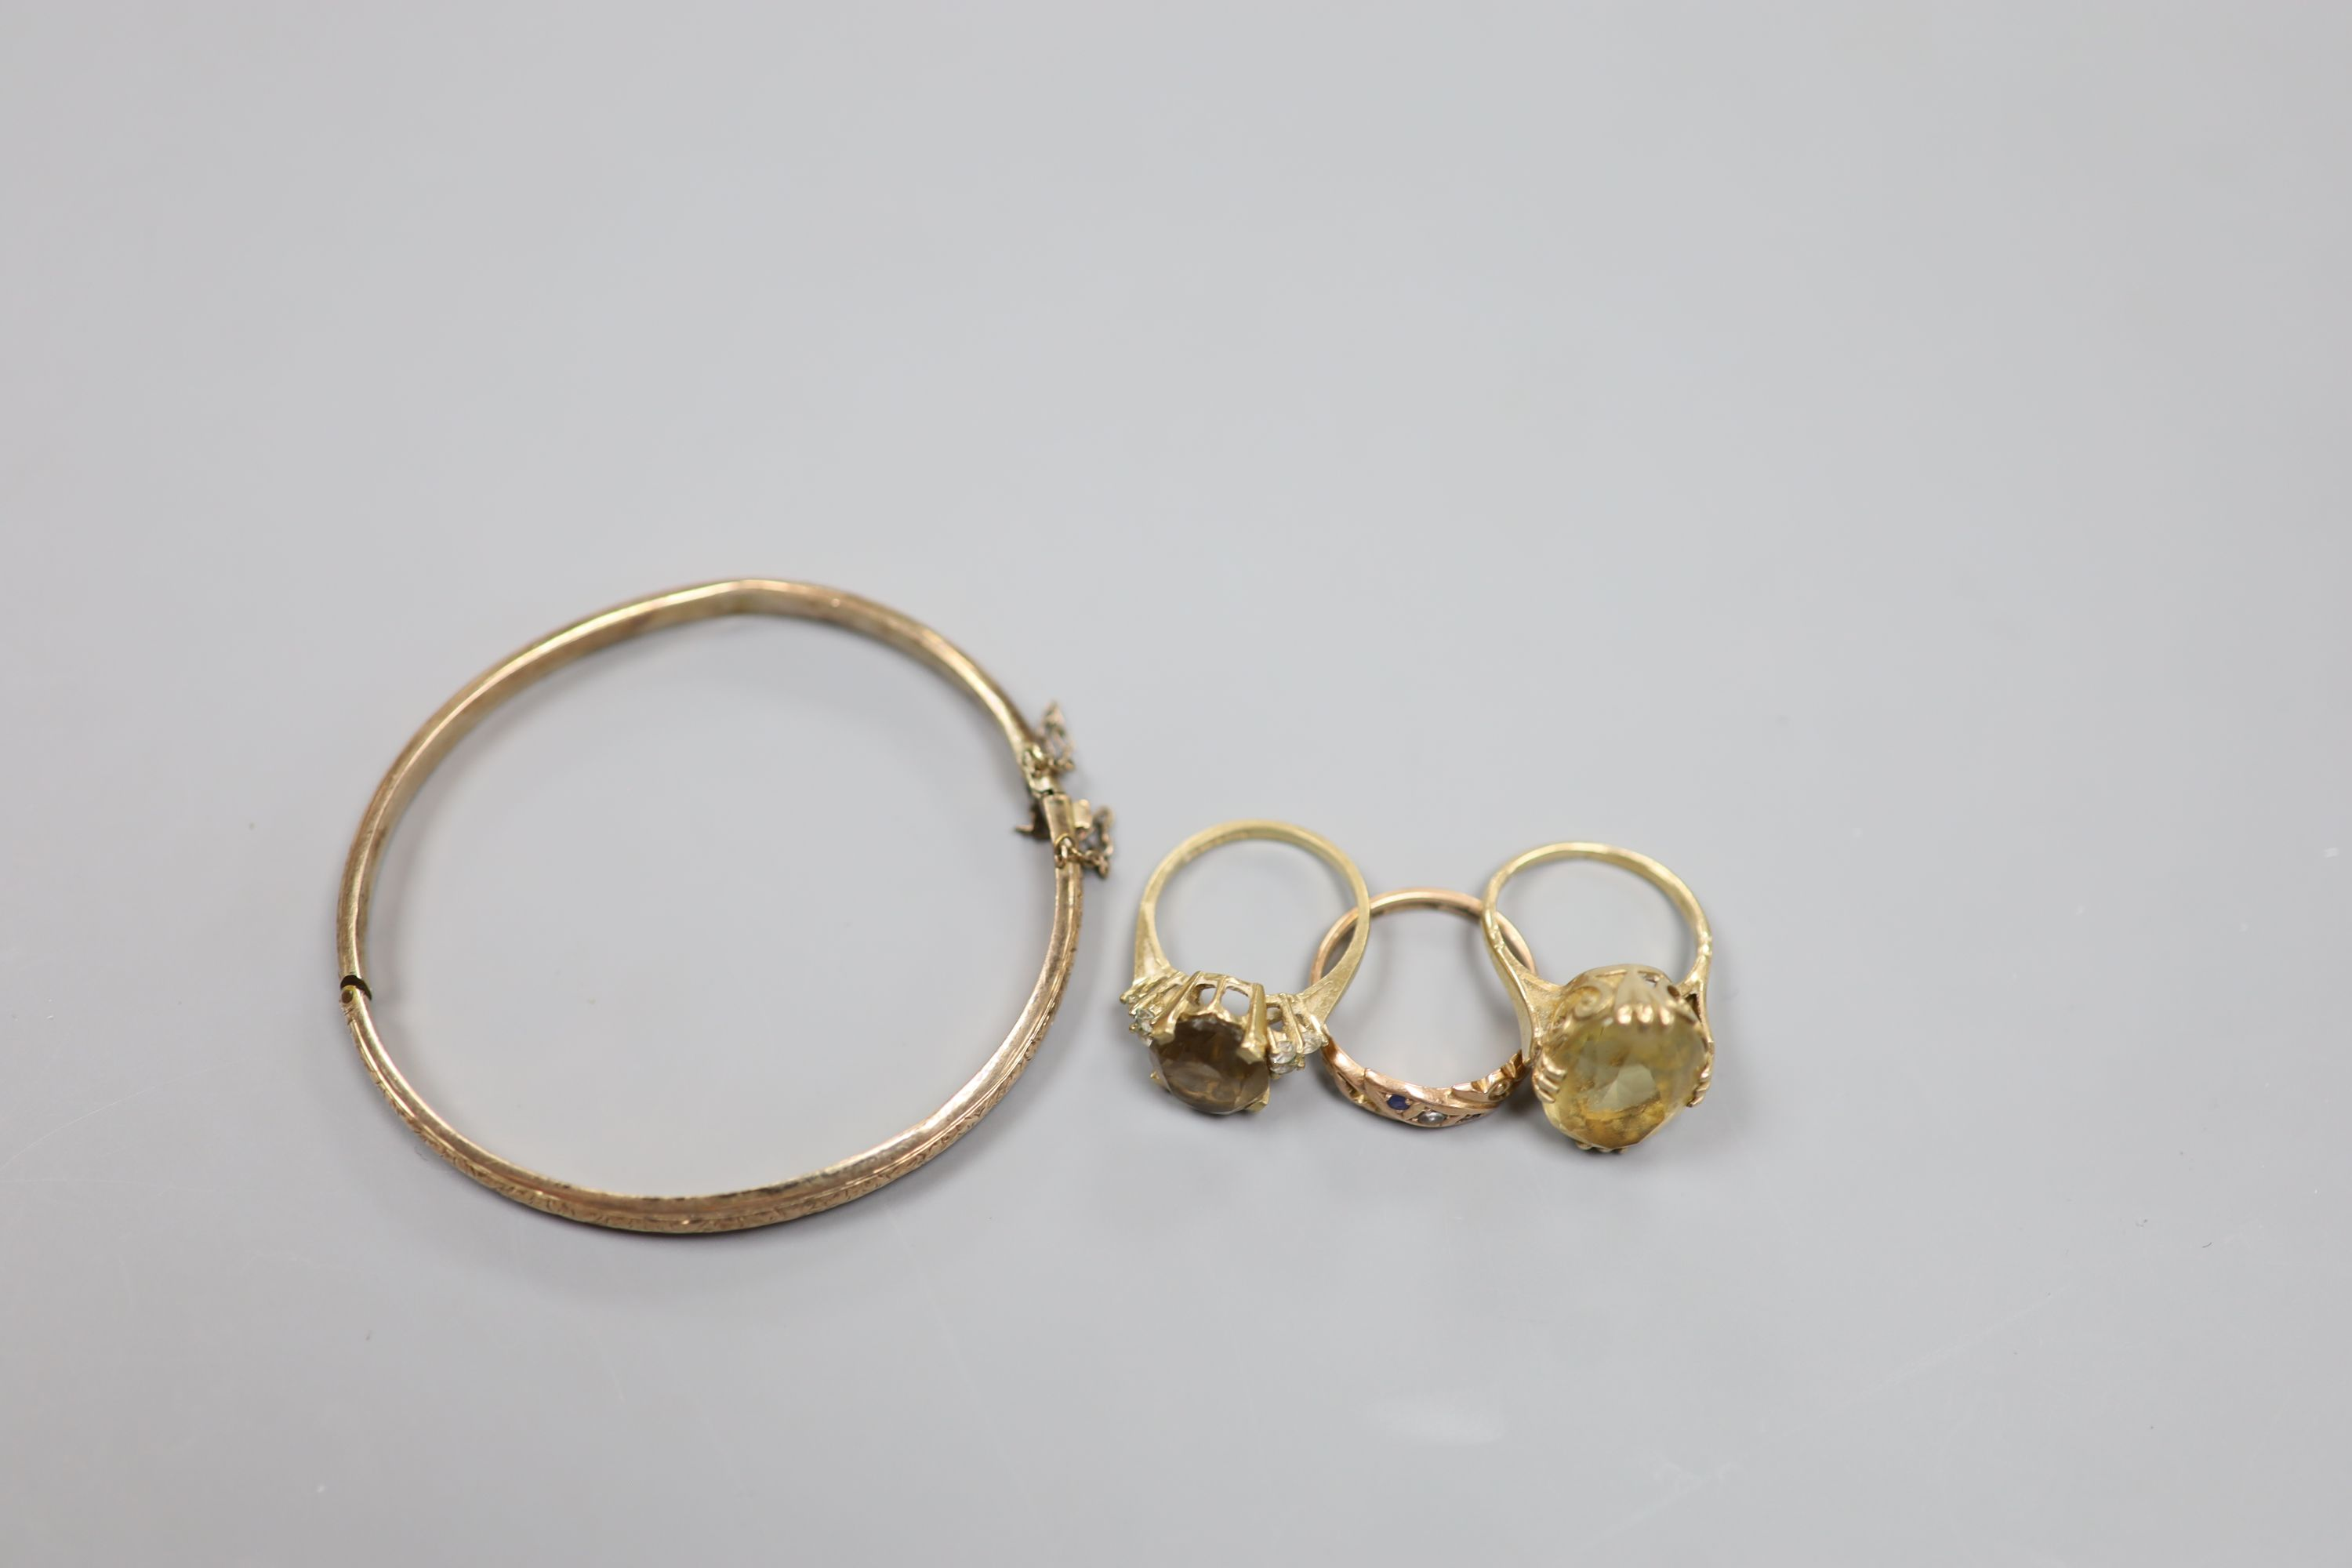 Three assorted 9ct and gem set rings and a 9ct gold hinged bangle,gross 18.1 grams. - Image 3 of 3